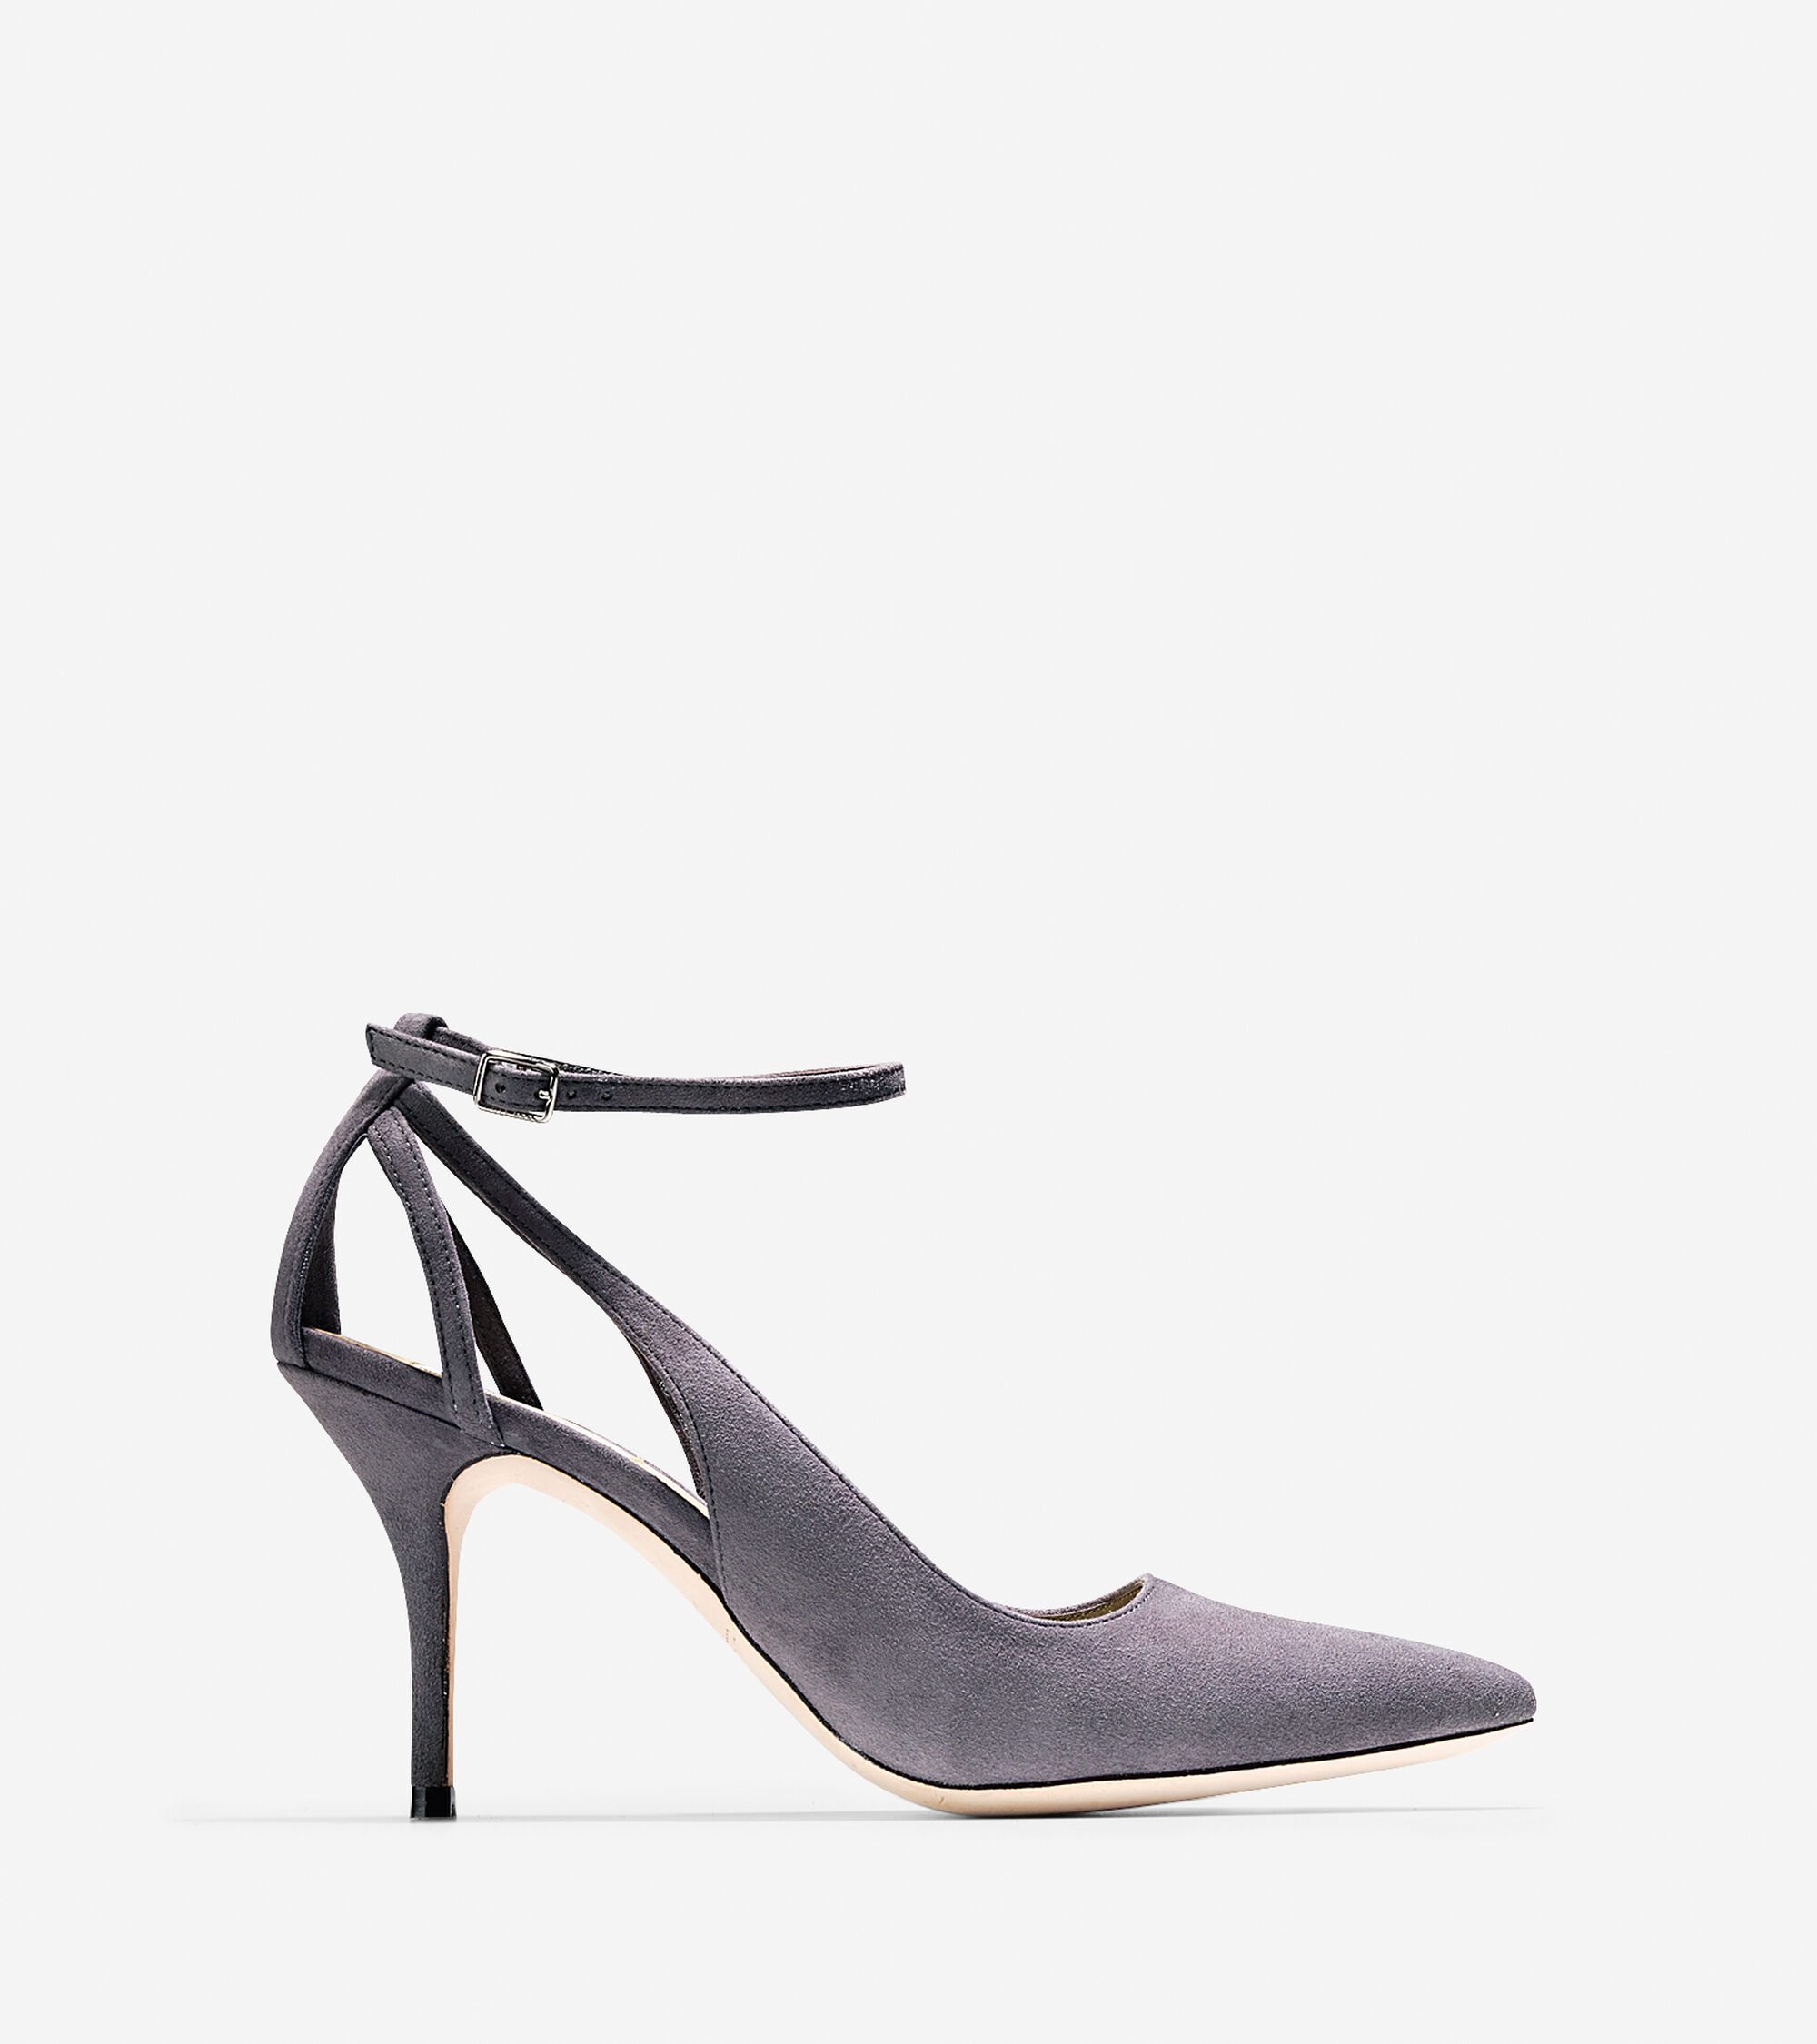 Shoes > Selma Pump (85mm) - Pointy Toe